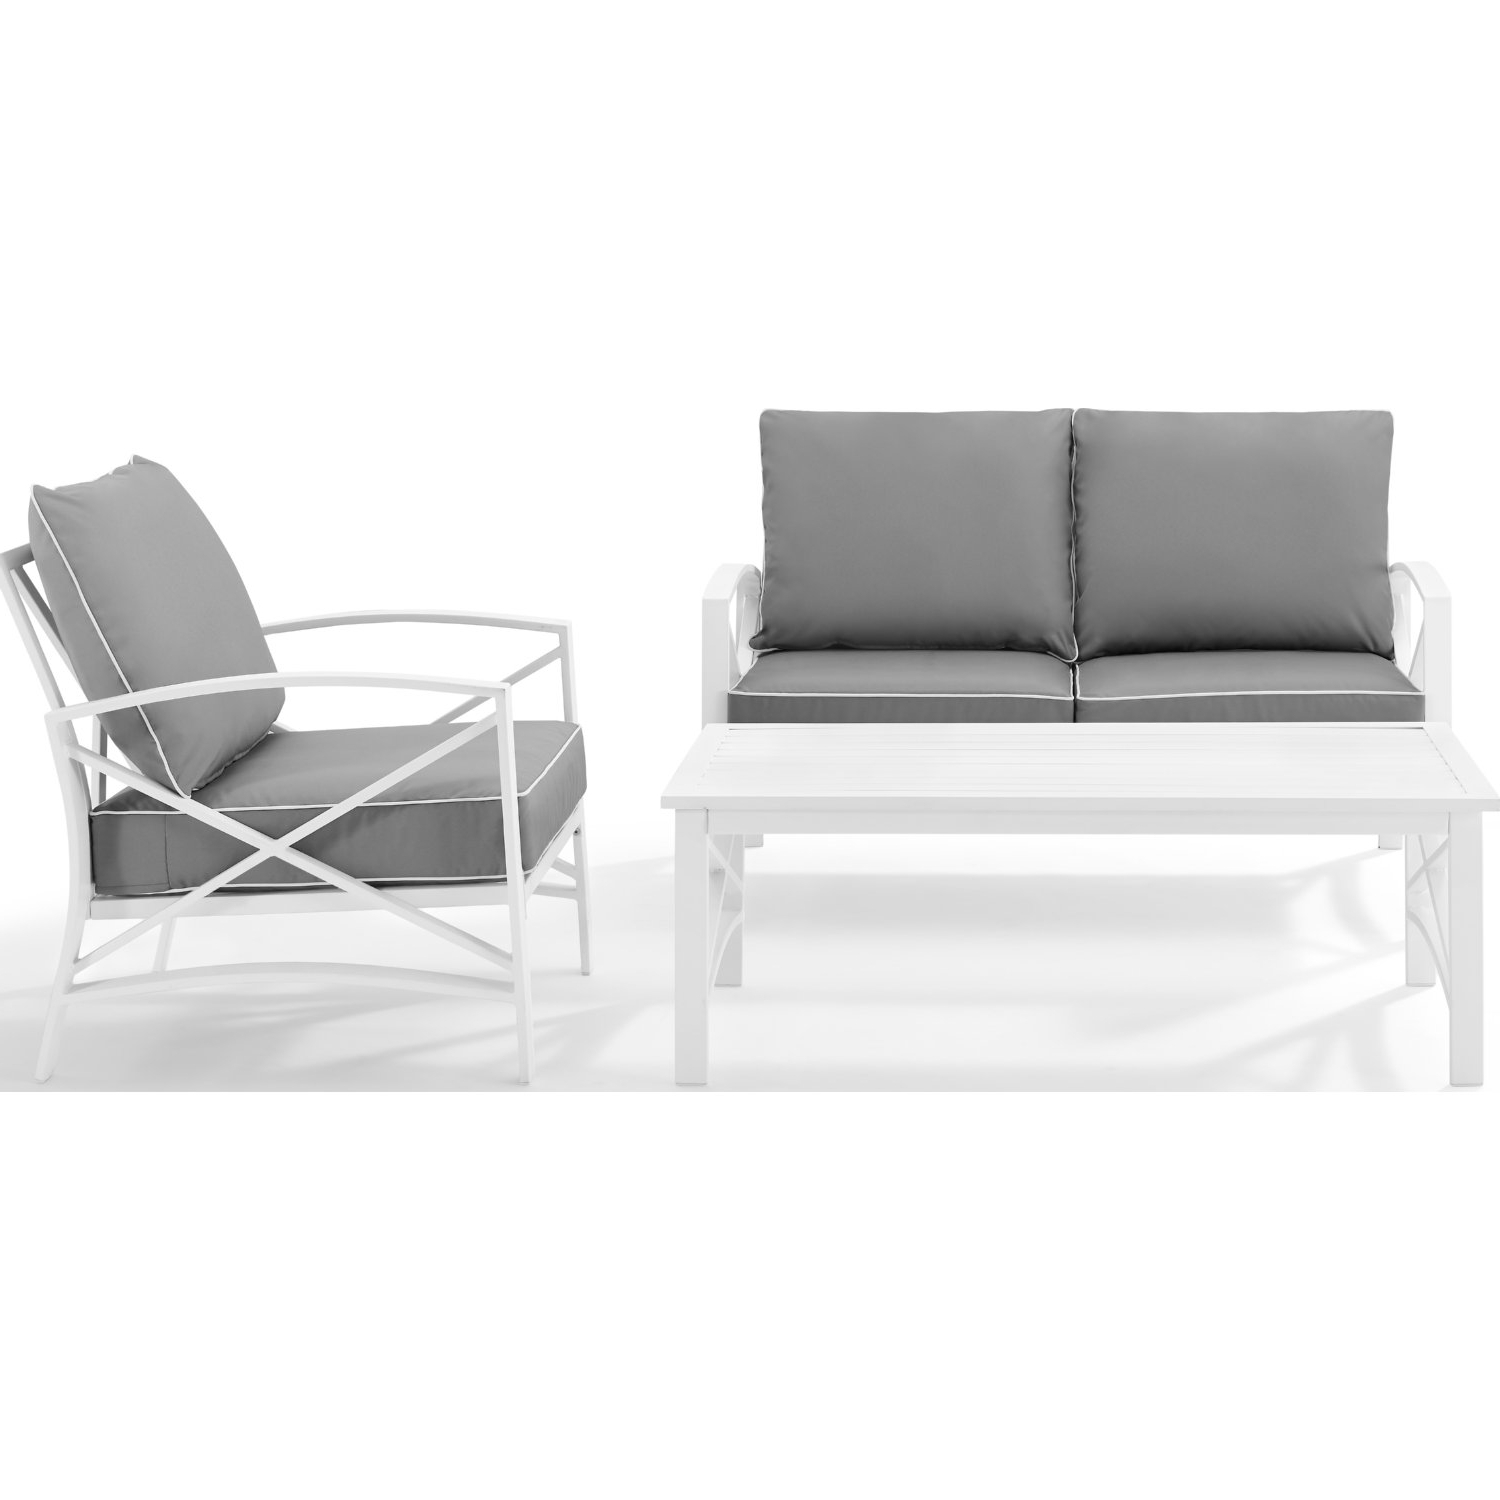 Well Known Freitag Loveseats With Cushions Regarding Kaplan 3 Piece Outdoor Loveseat Set W/ Grey Cushions (View 19 of 20)